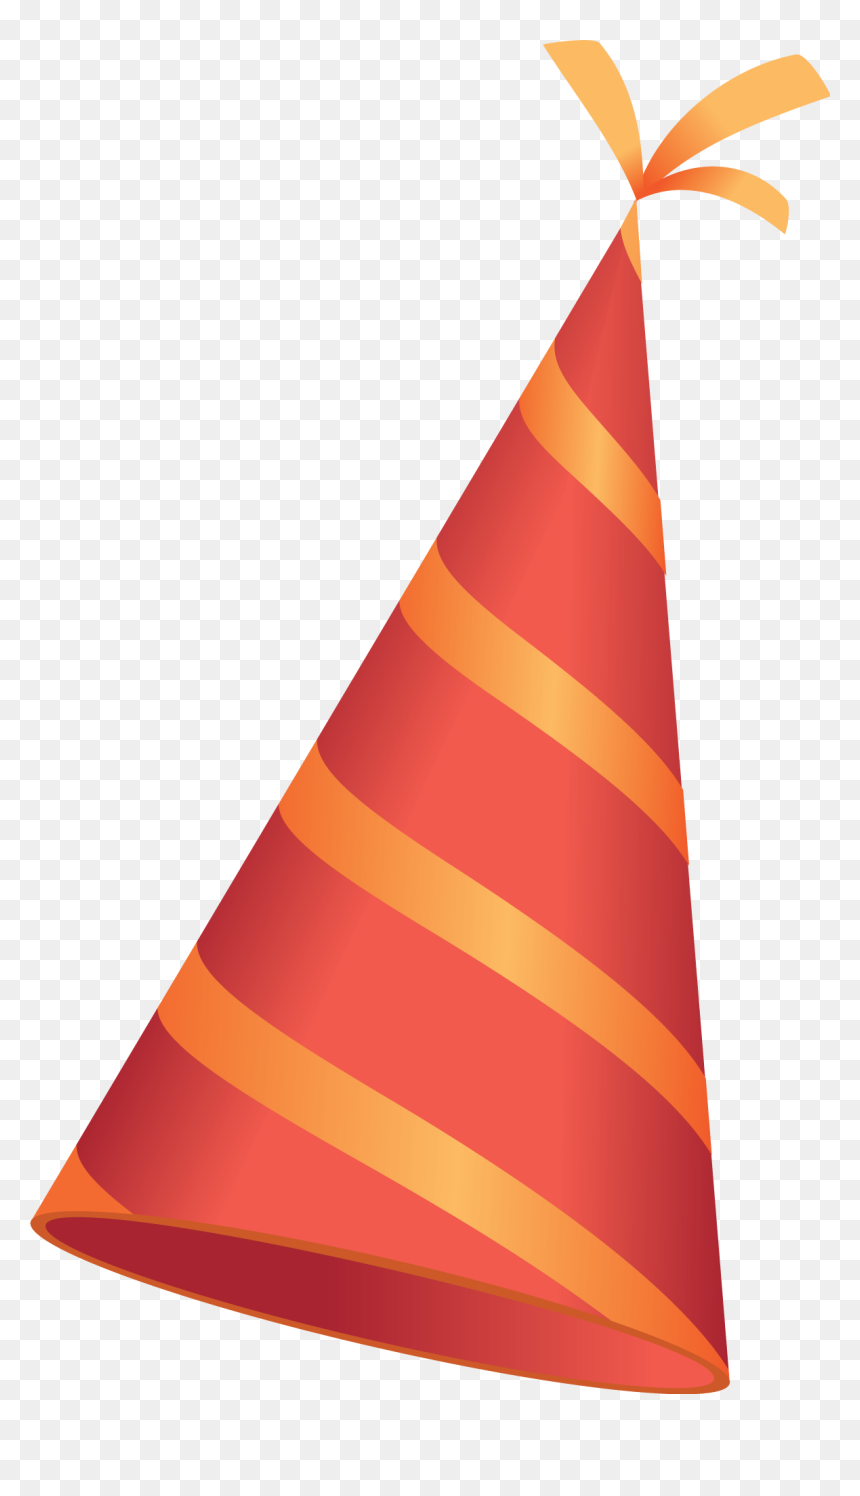 Party Birthday Hat Png Transparent Background Birthday Hat Png Download Vhv Party hat birthday cap, birthday hat, party hat illustration, hat, holidays png. party birthday hat png transparent